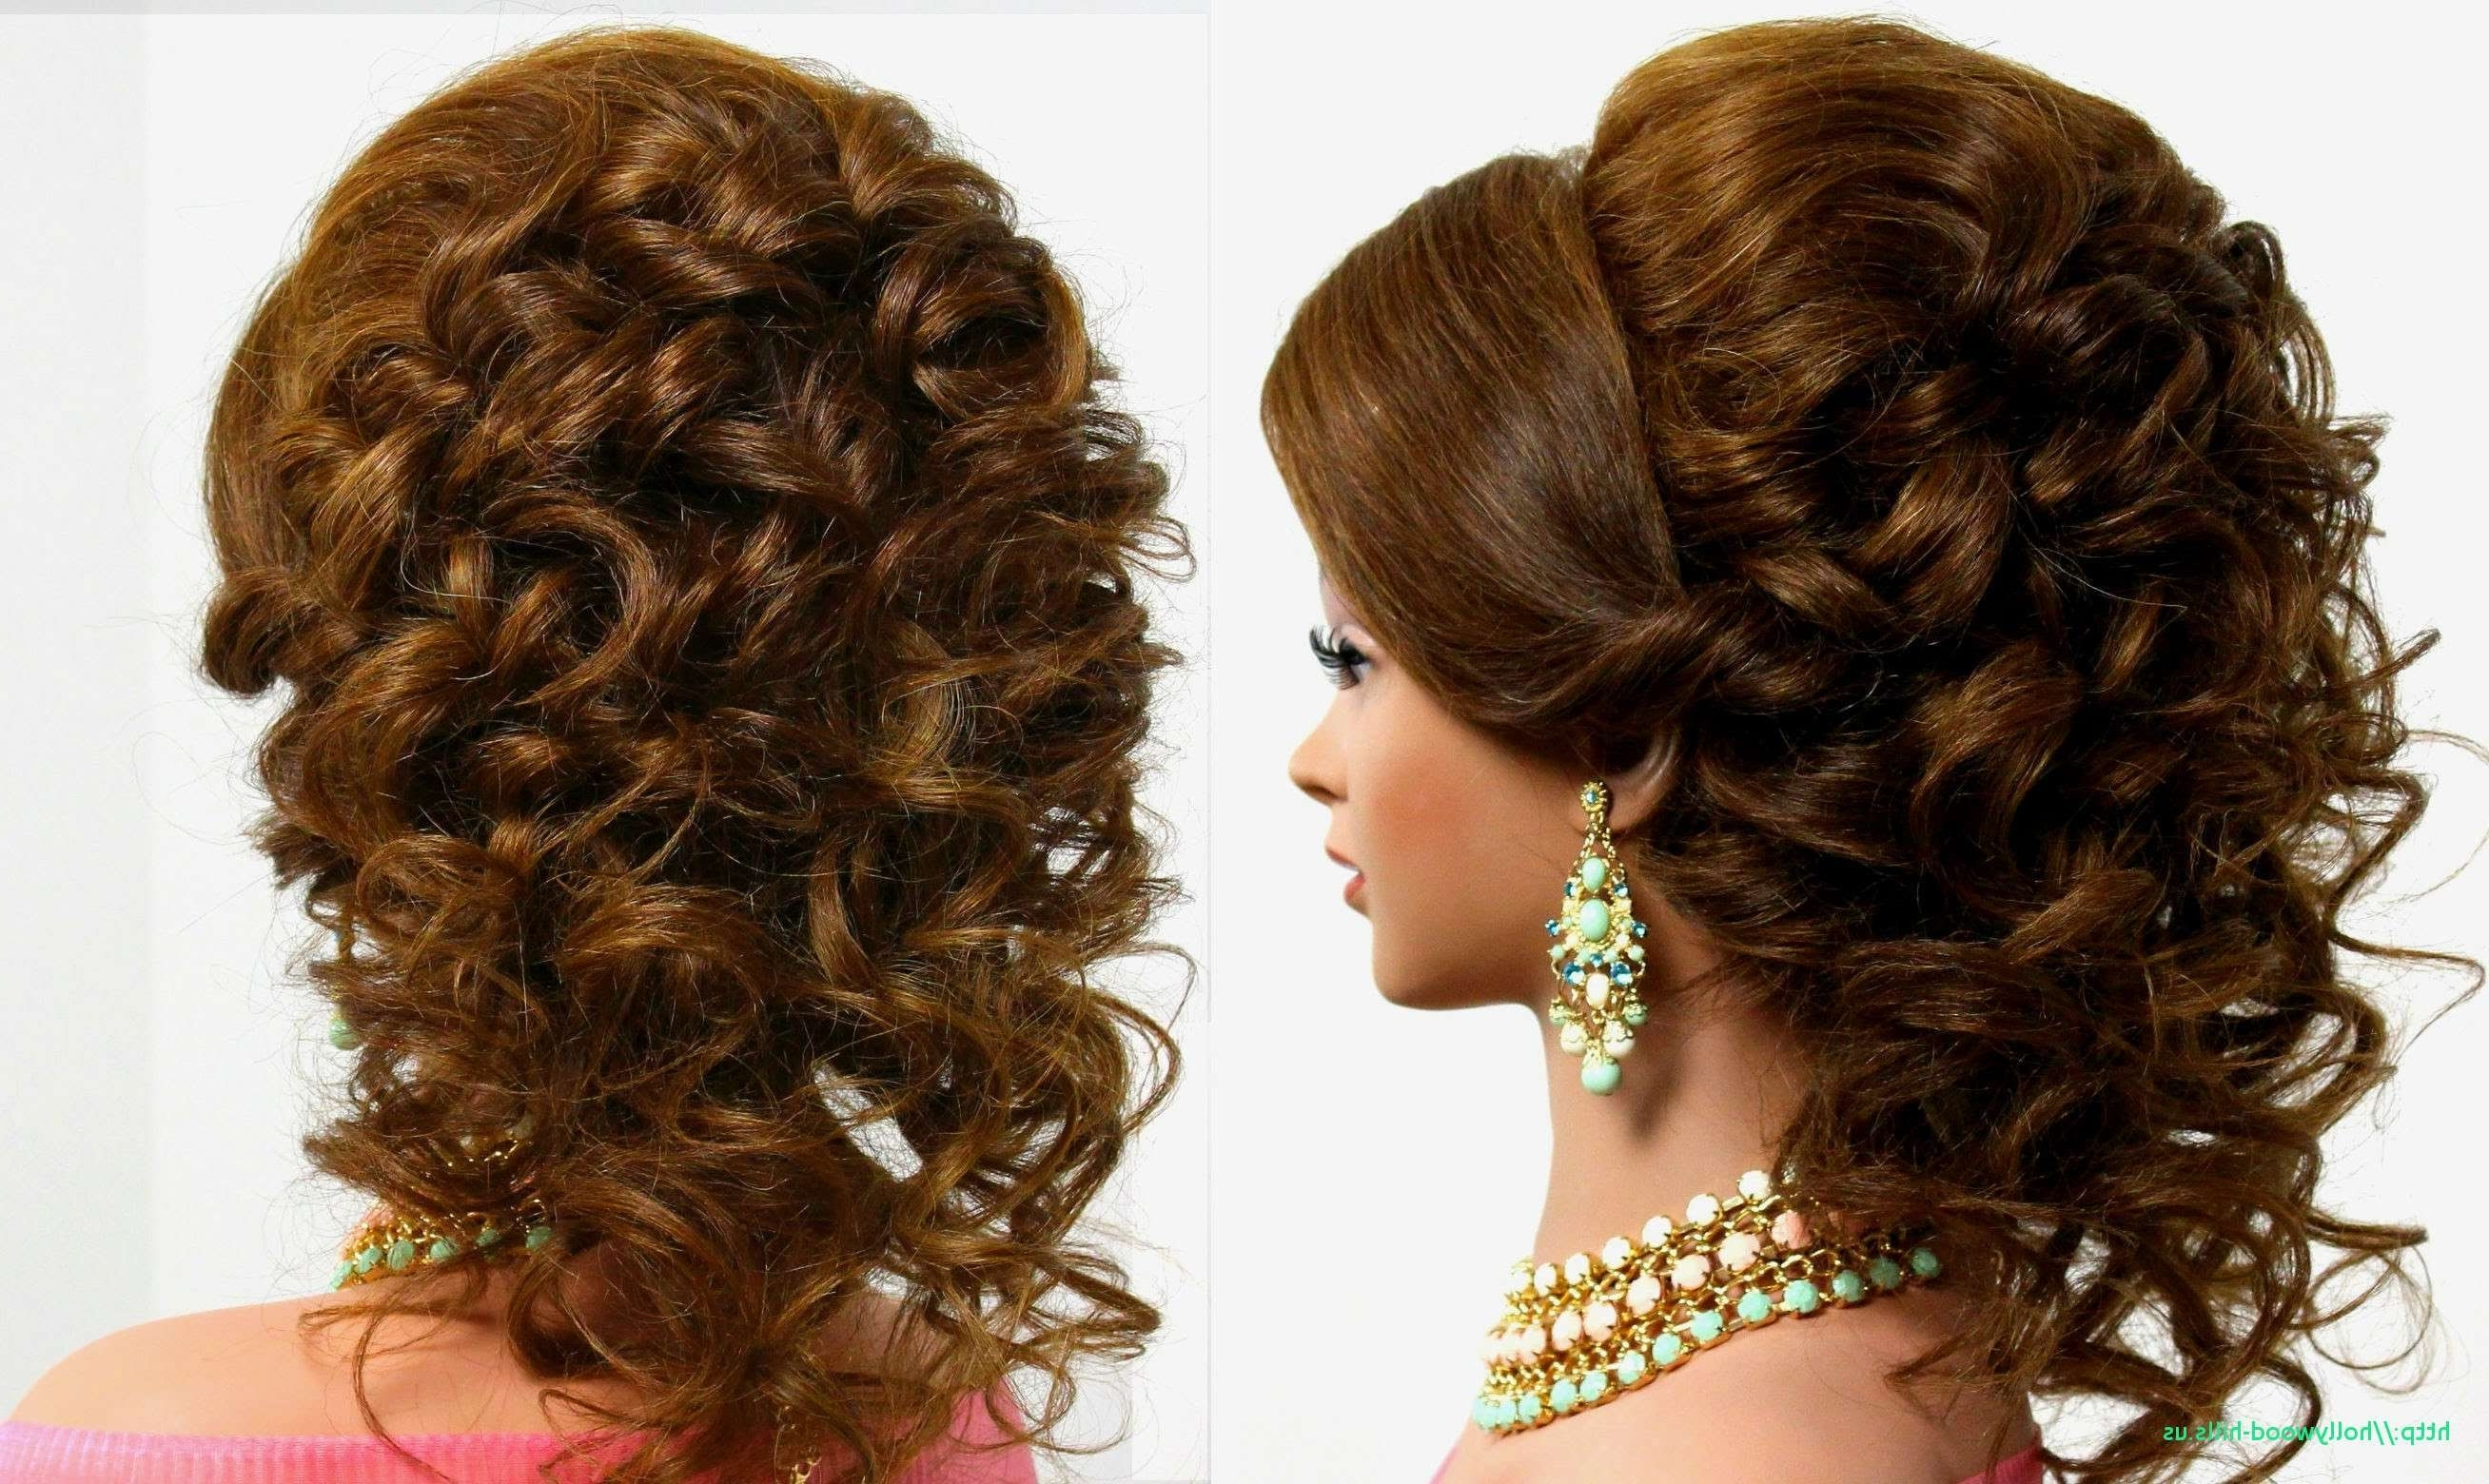 Hair Colors Inspiration For You Using Amazing Wedding Hairstyles In Trendy Wedding Hairstyles For Long Brown Hair (View 7 of 15)